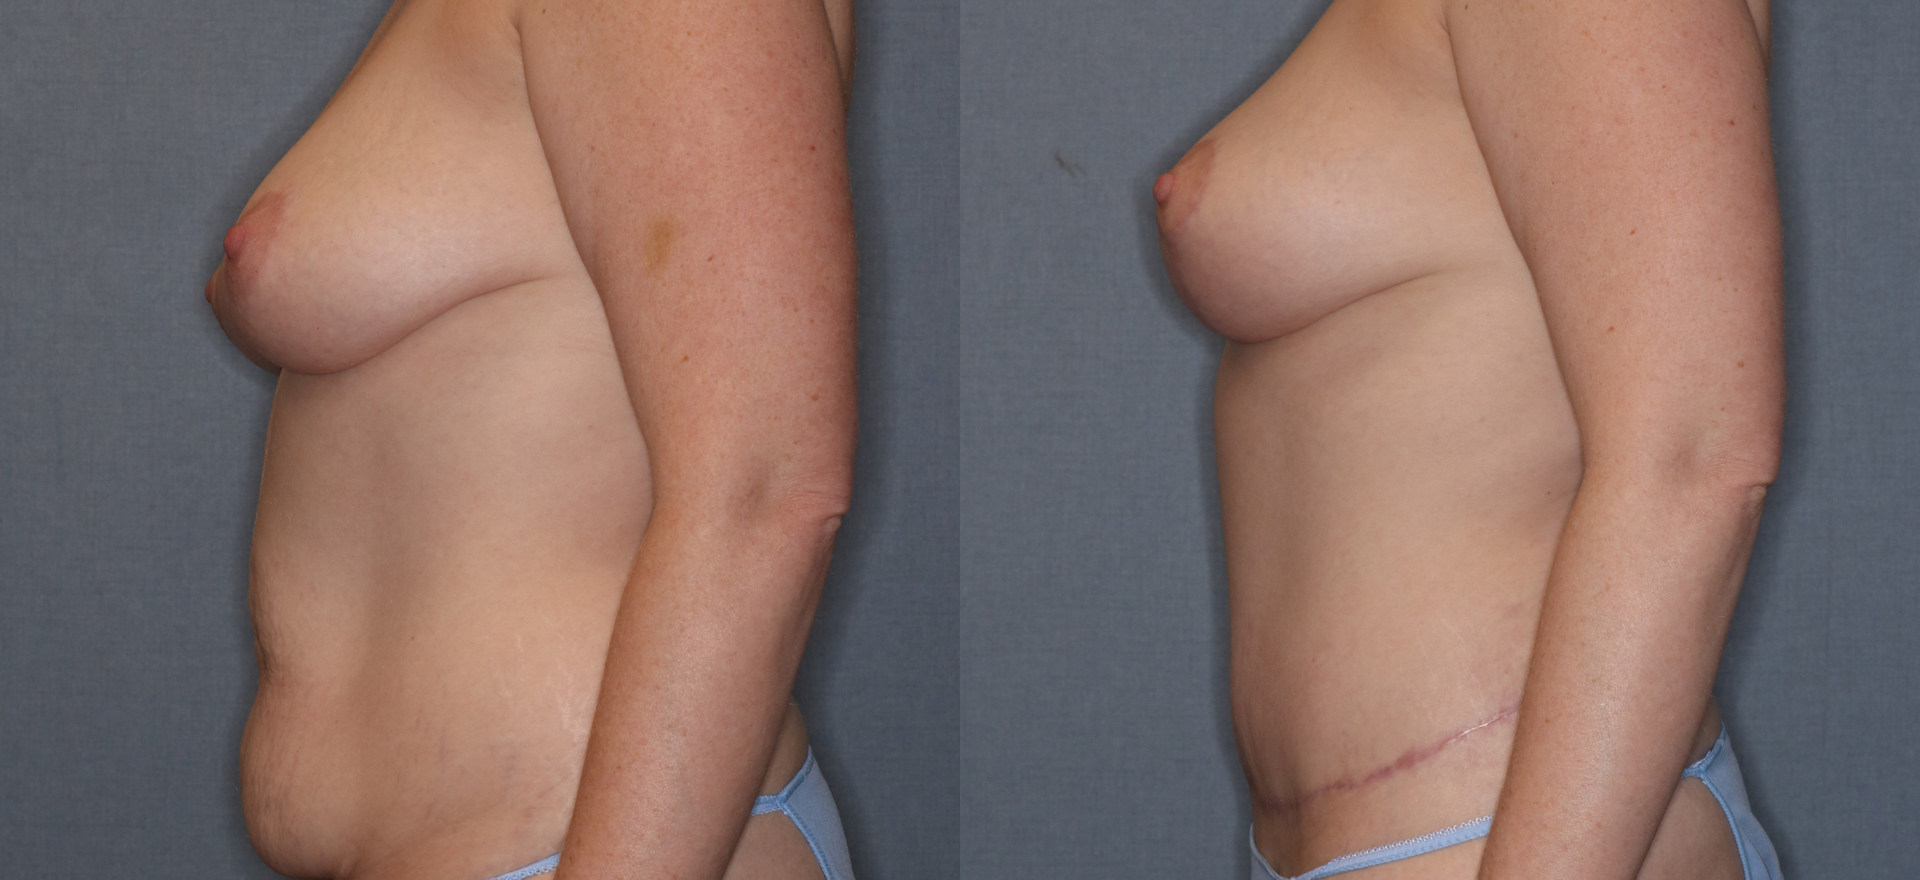 Before and After Breast Lift without Implants